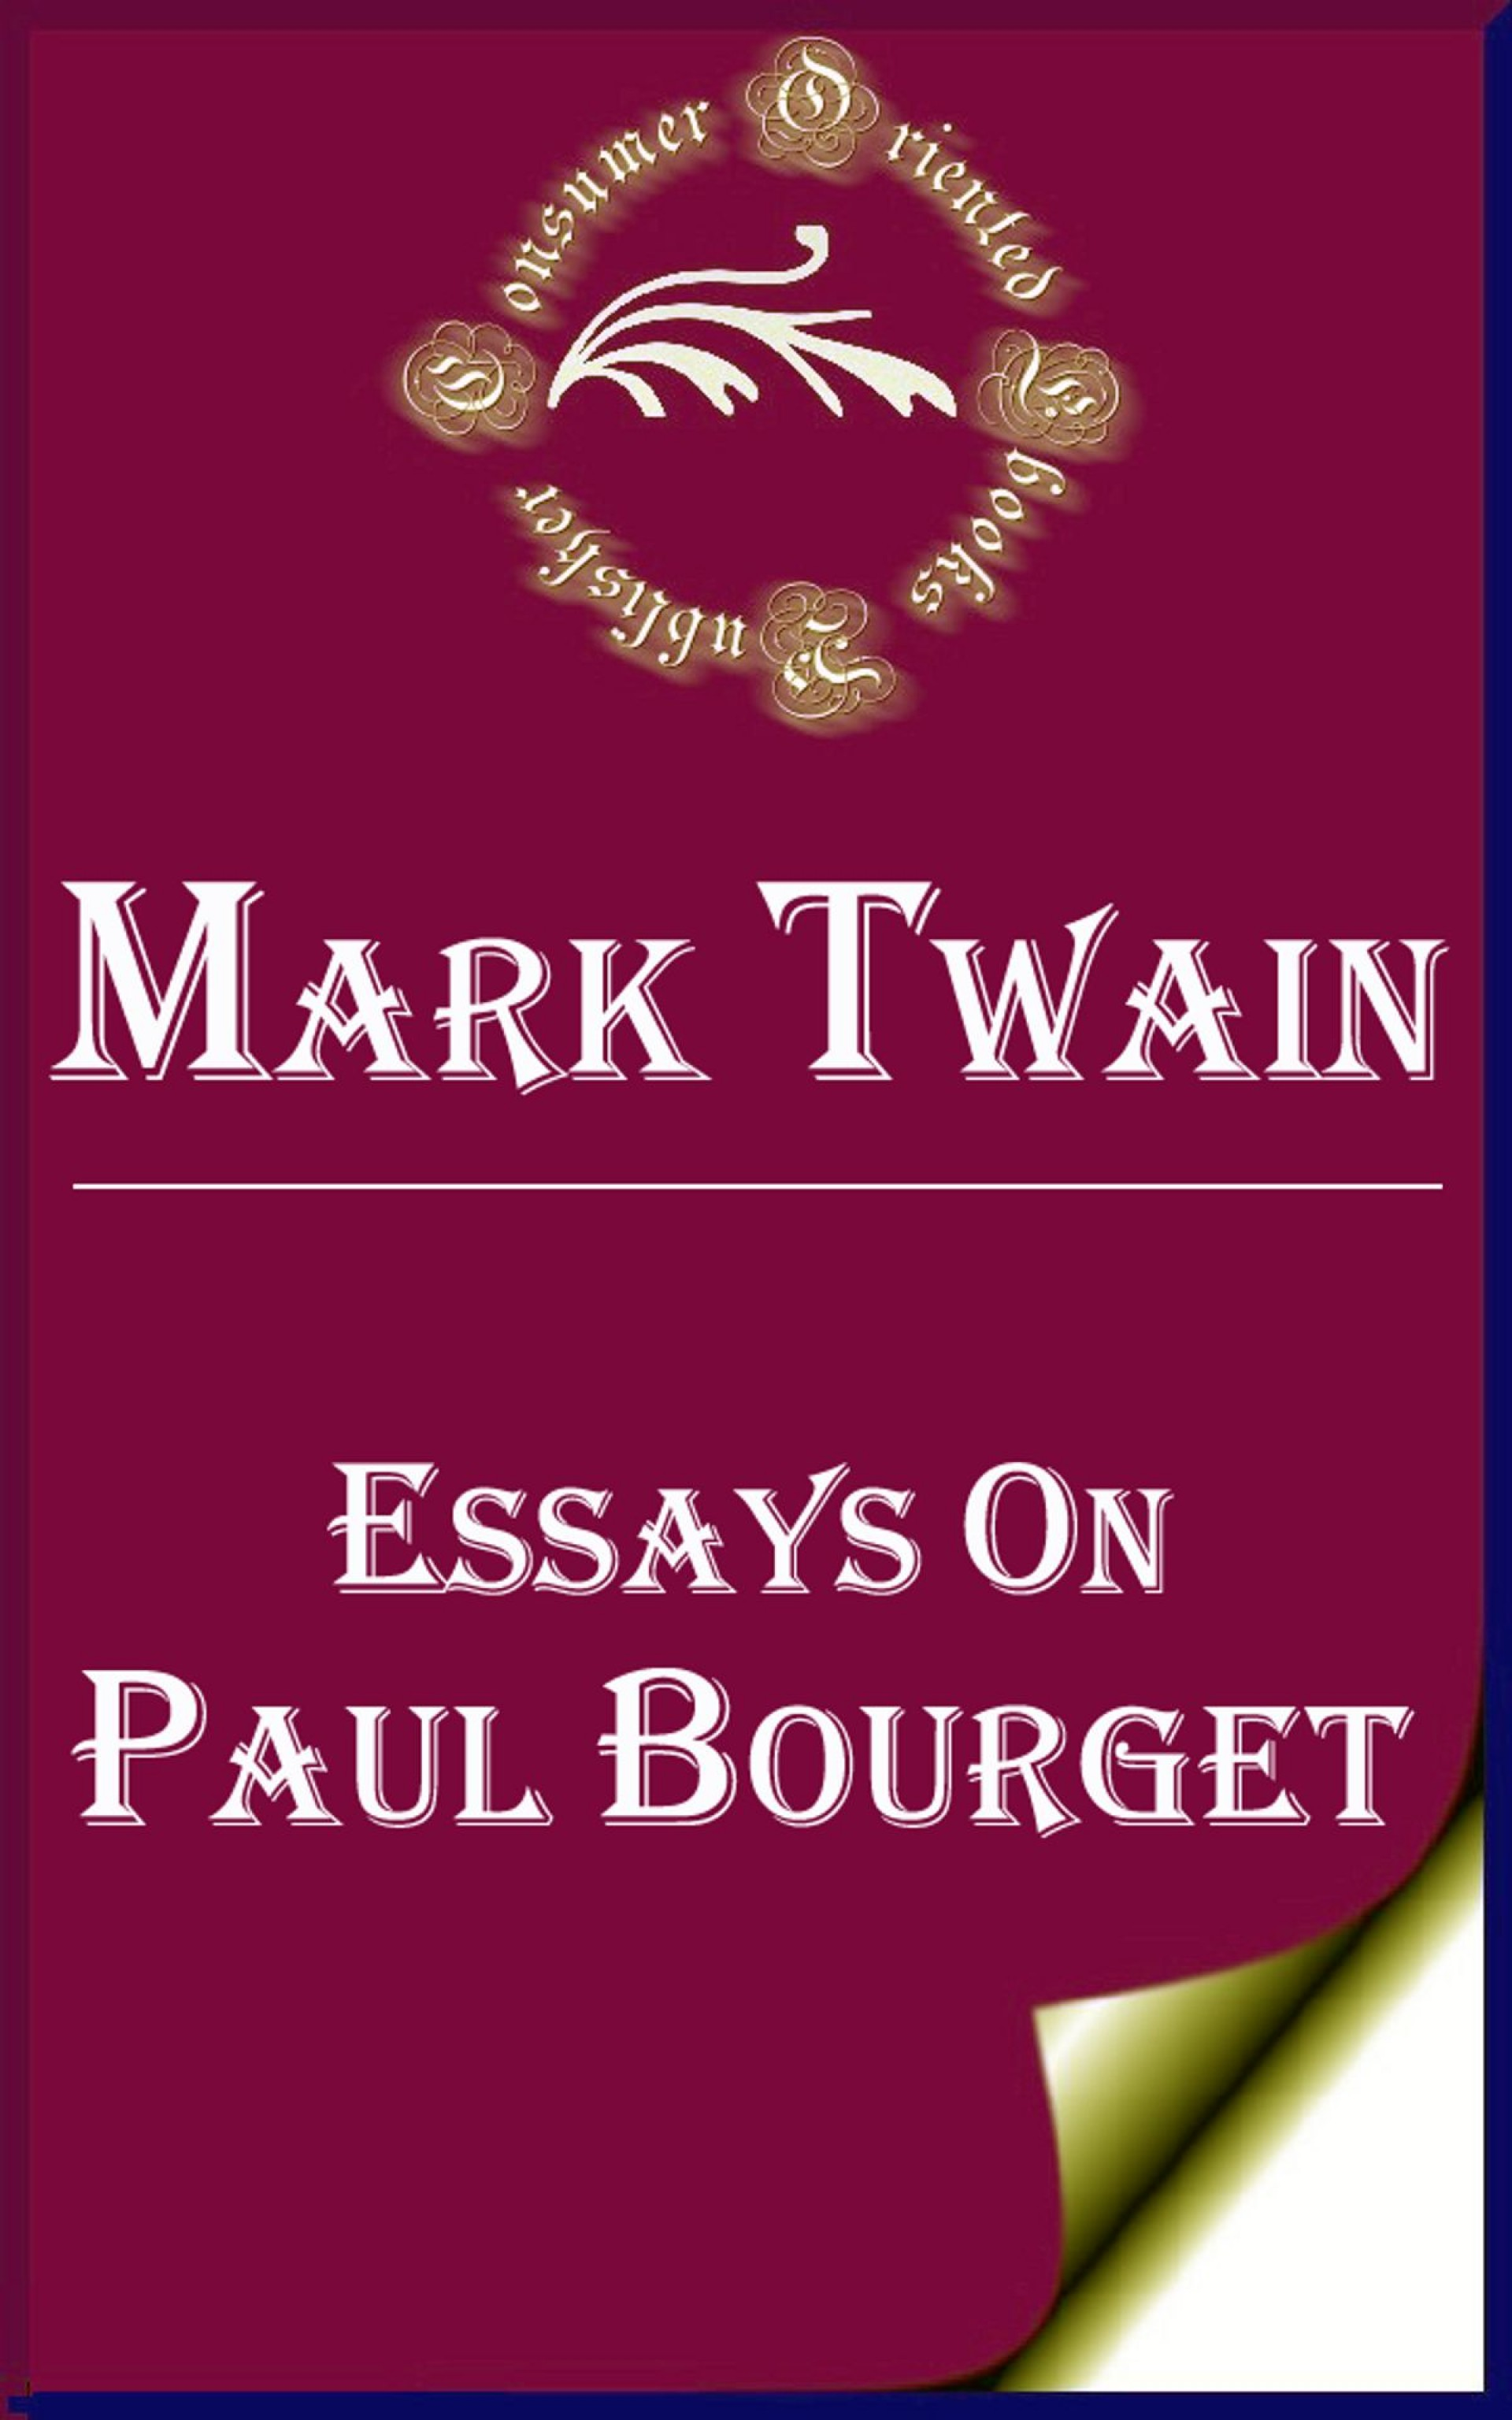 022 Mark Twain Essays Essay Example On Paul Bourget Surprising Pdf Writing Nonfiction 1920